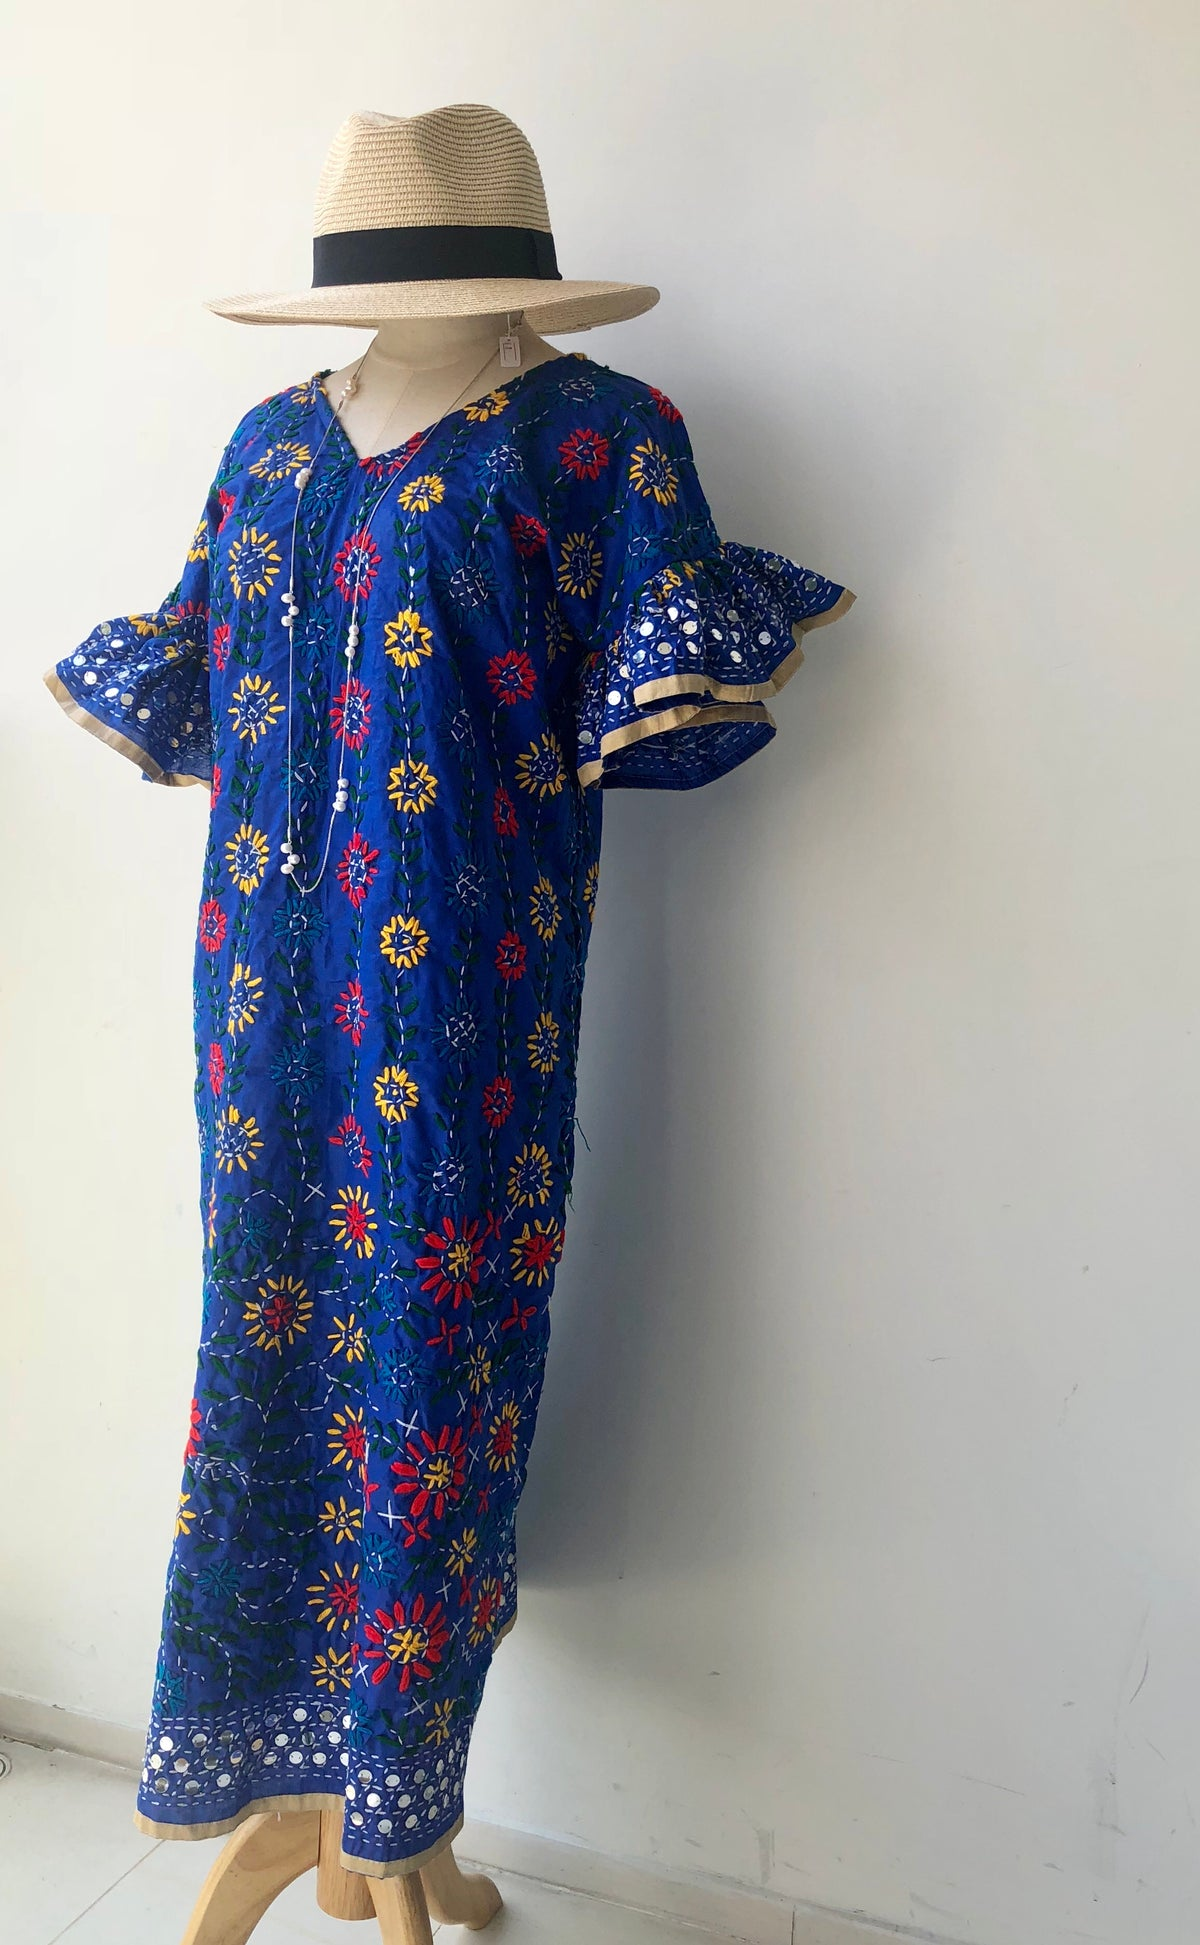 (Restock) Bellari Hand Embroidered Dress